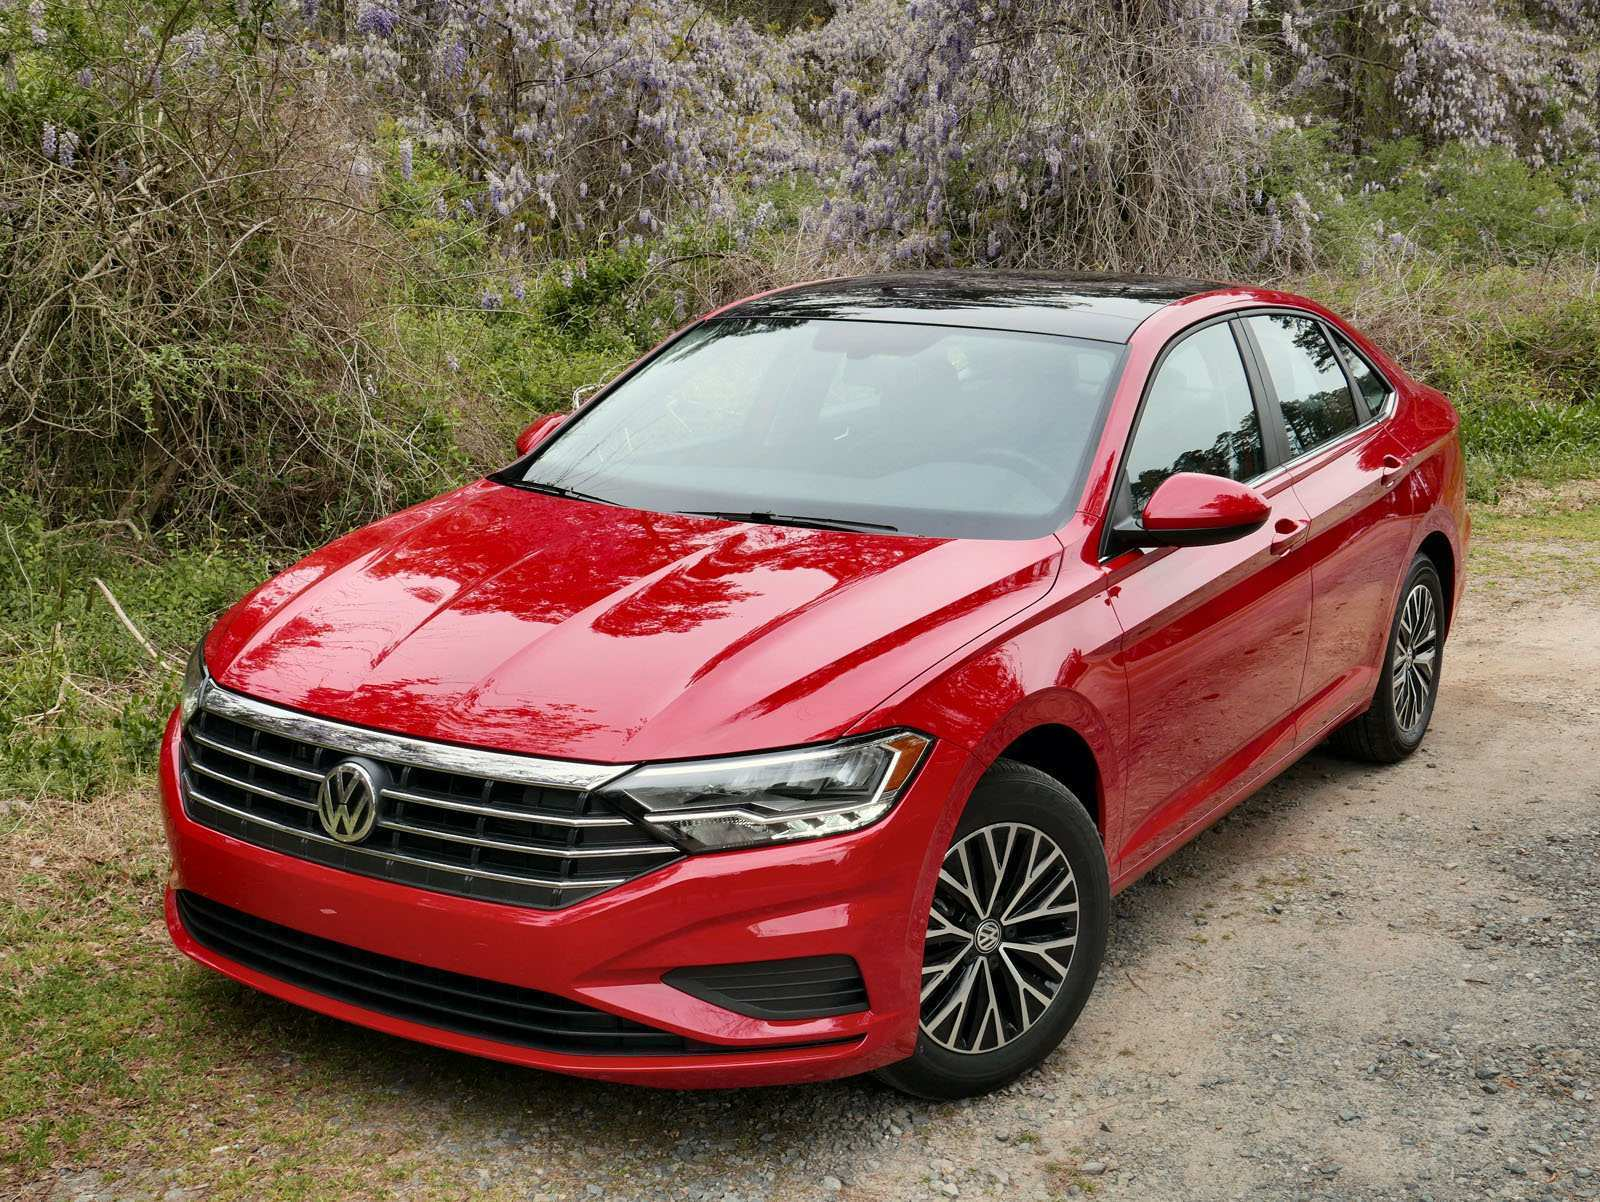 37 All New 2019 Vw Jetta Redesign by 2019 Vw Jetta